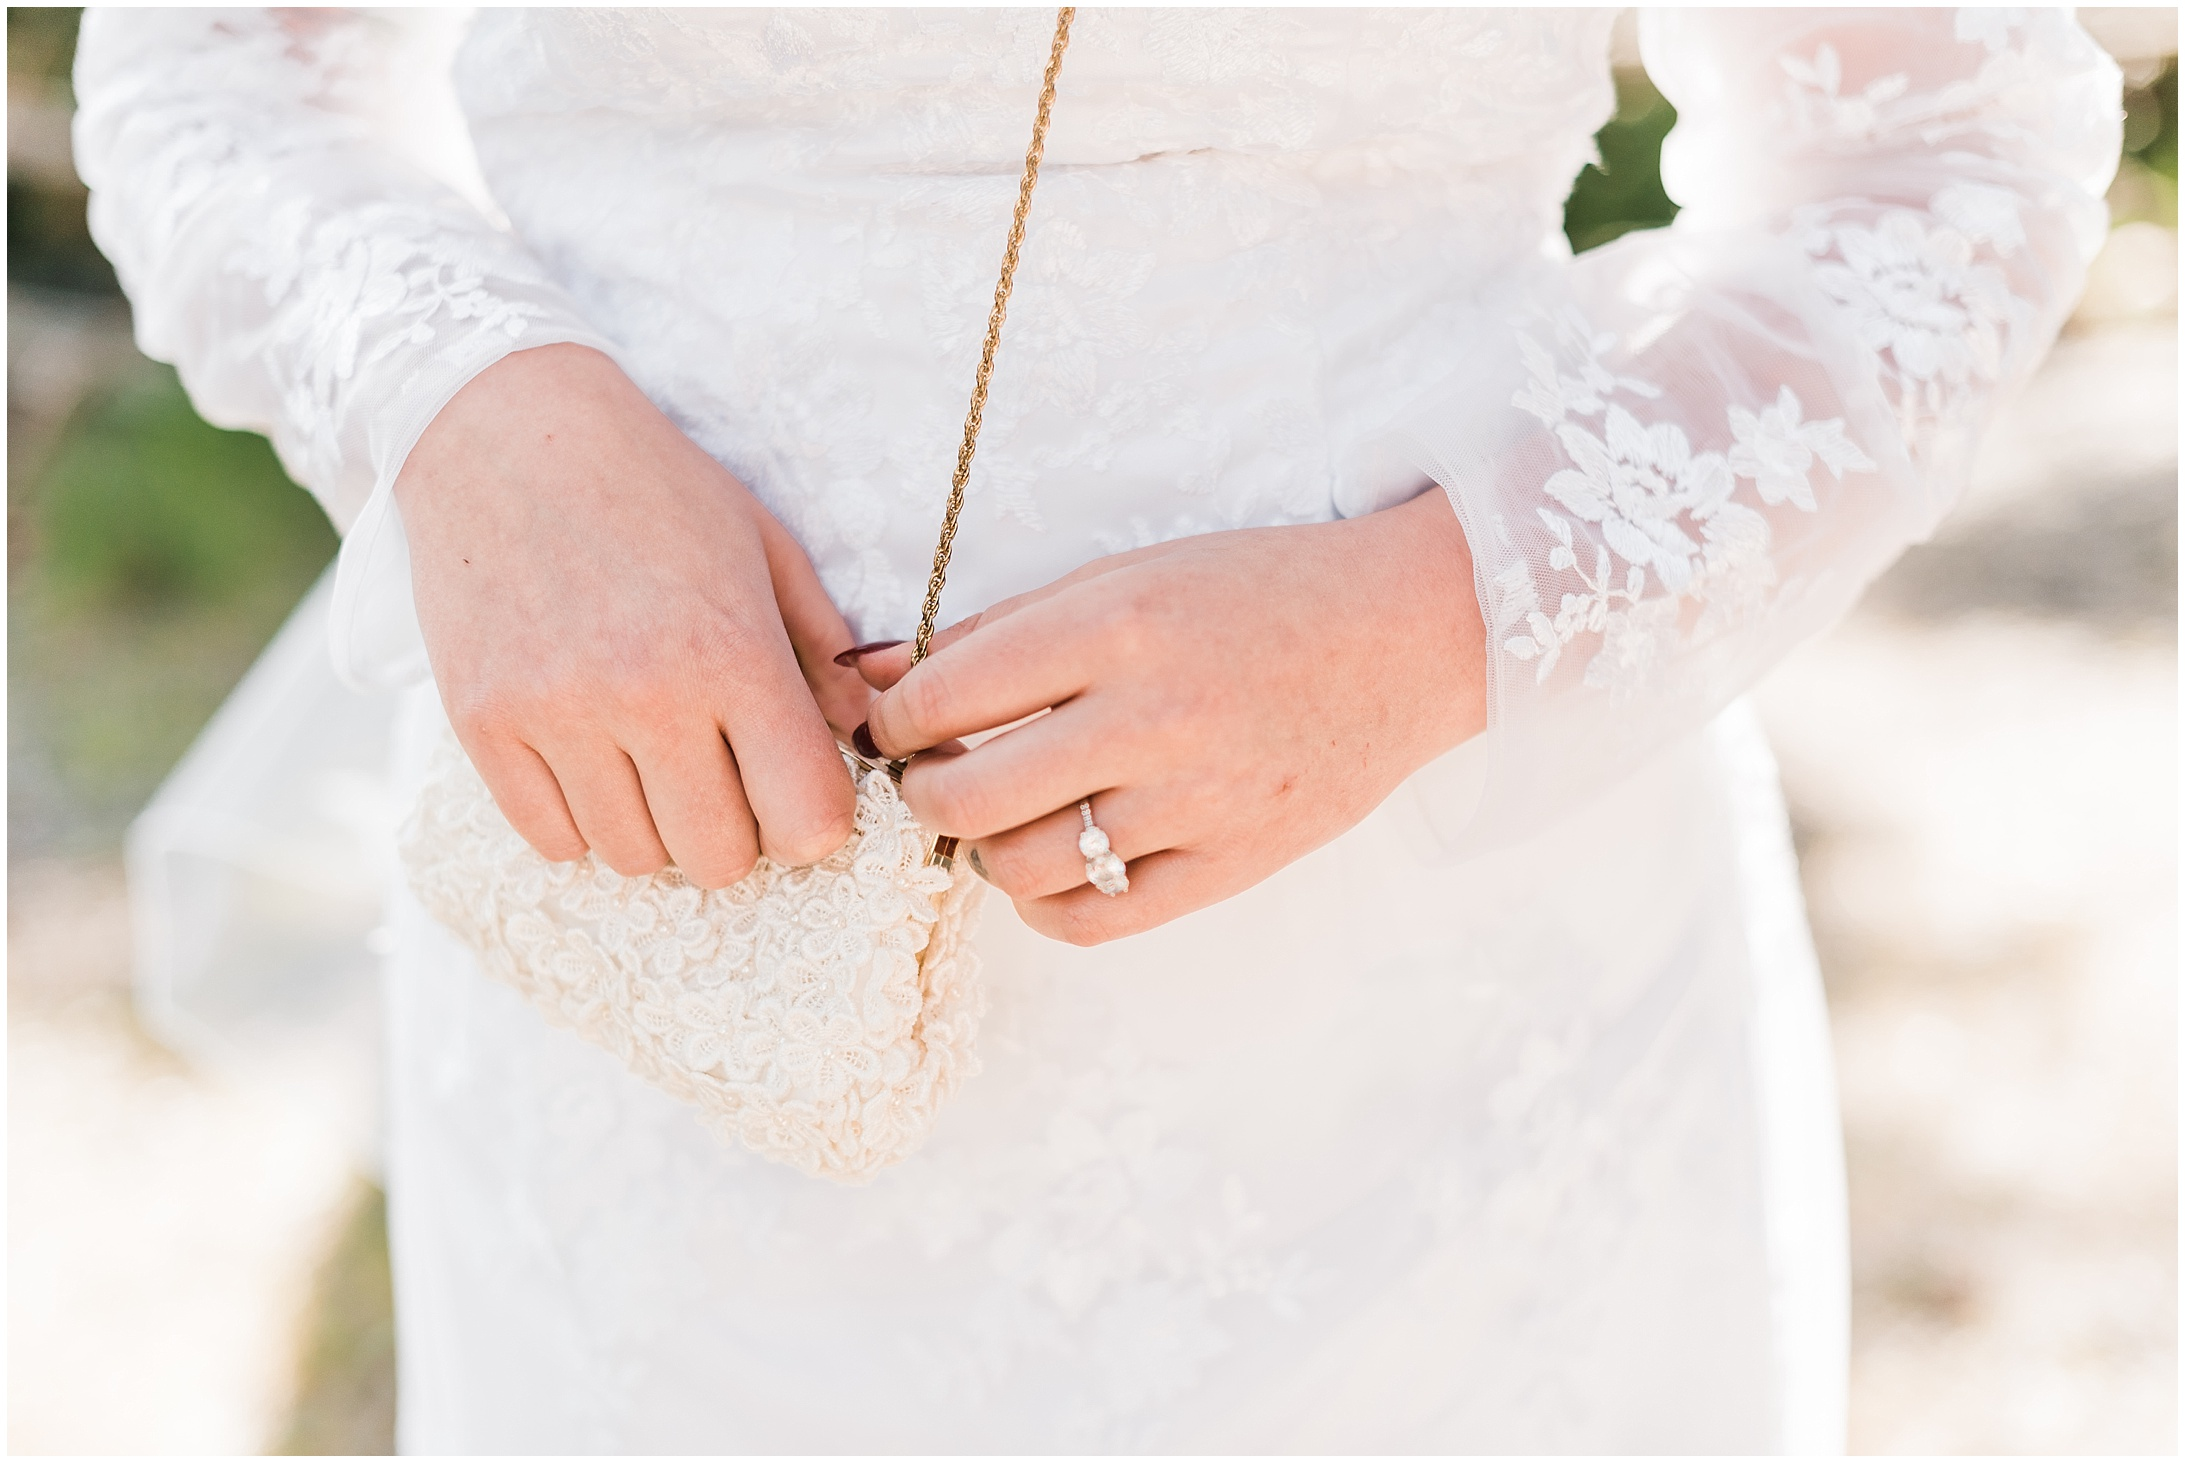 Close up picture of a bride's hands